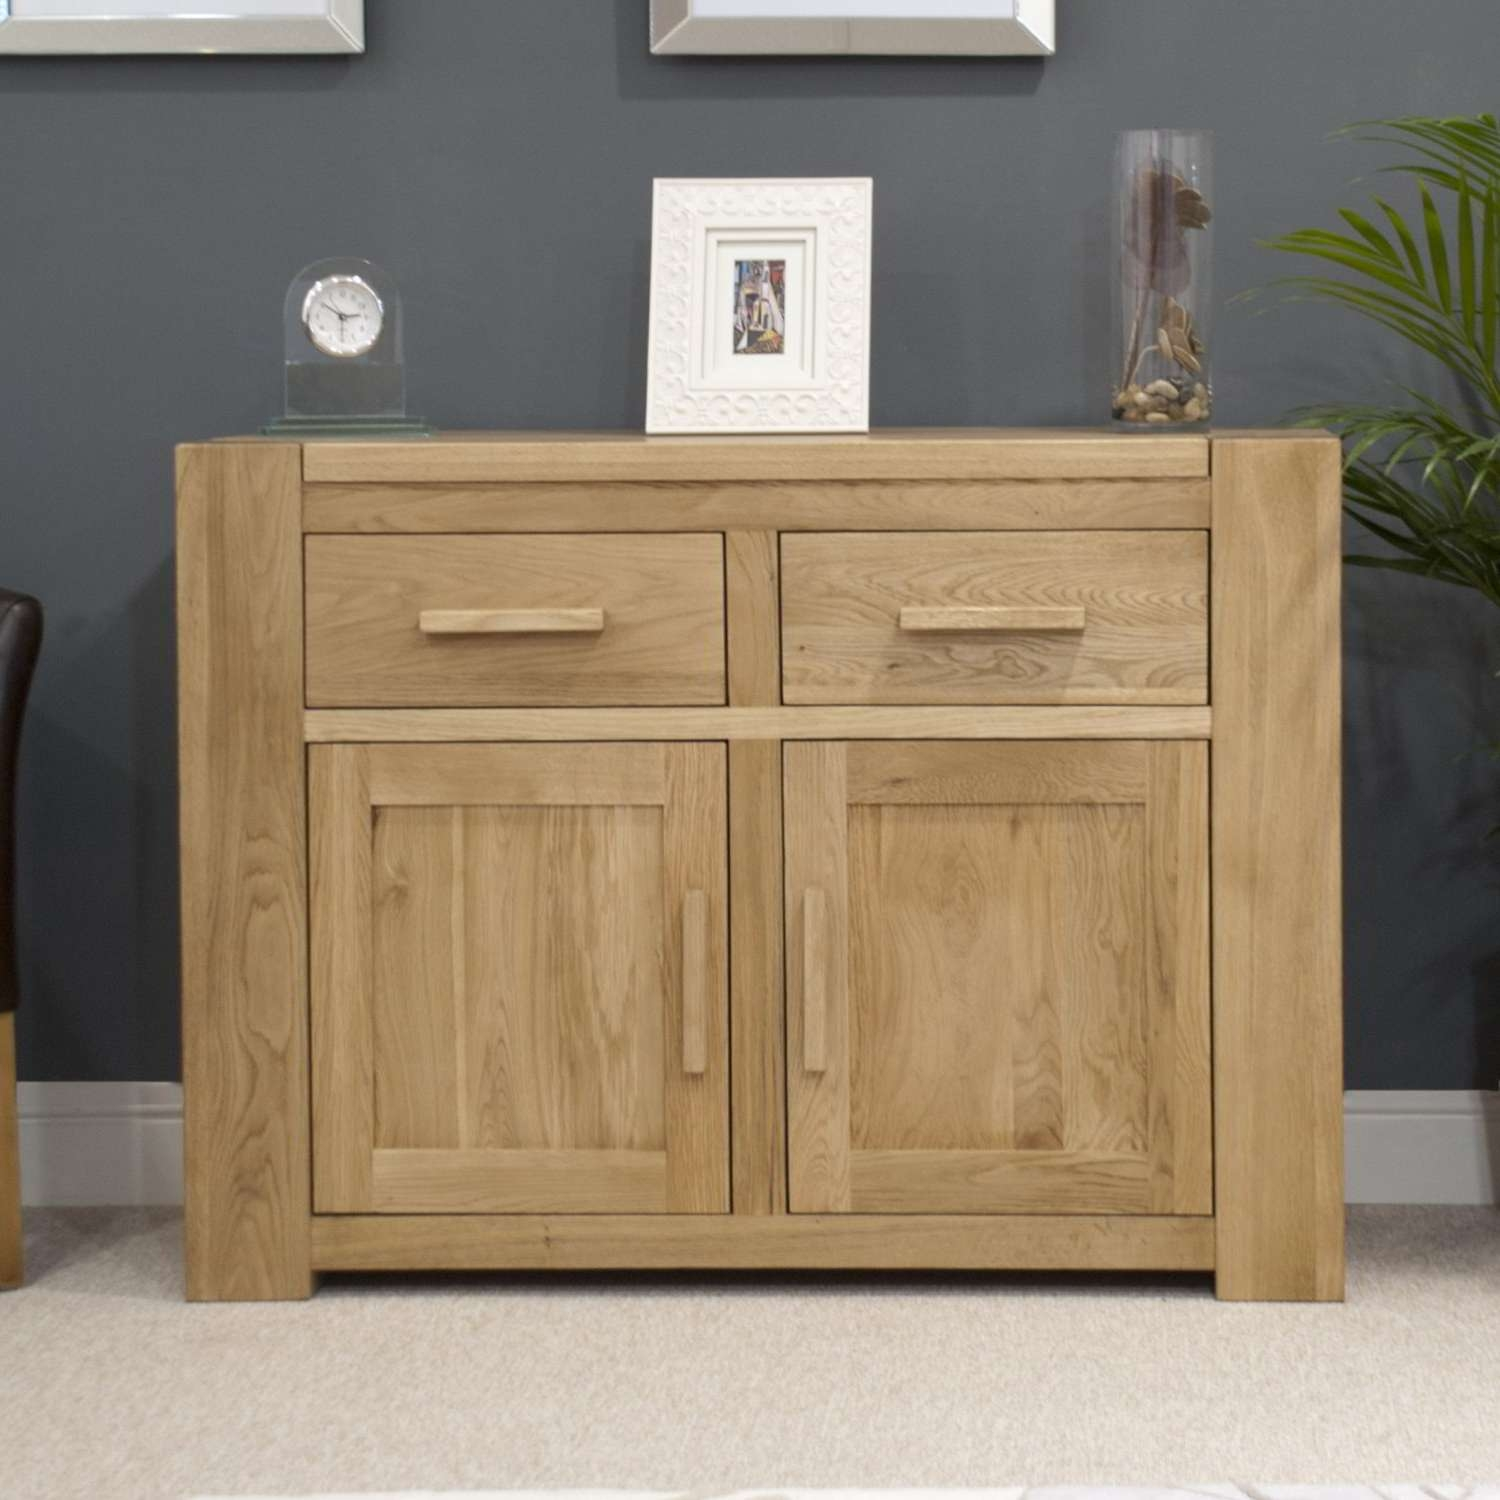 Living Room Sideboards Living Room Mini Bar Furniture Design Living Room Bar Furniture Gallery